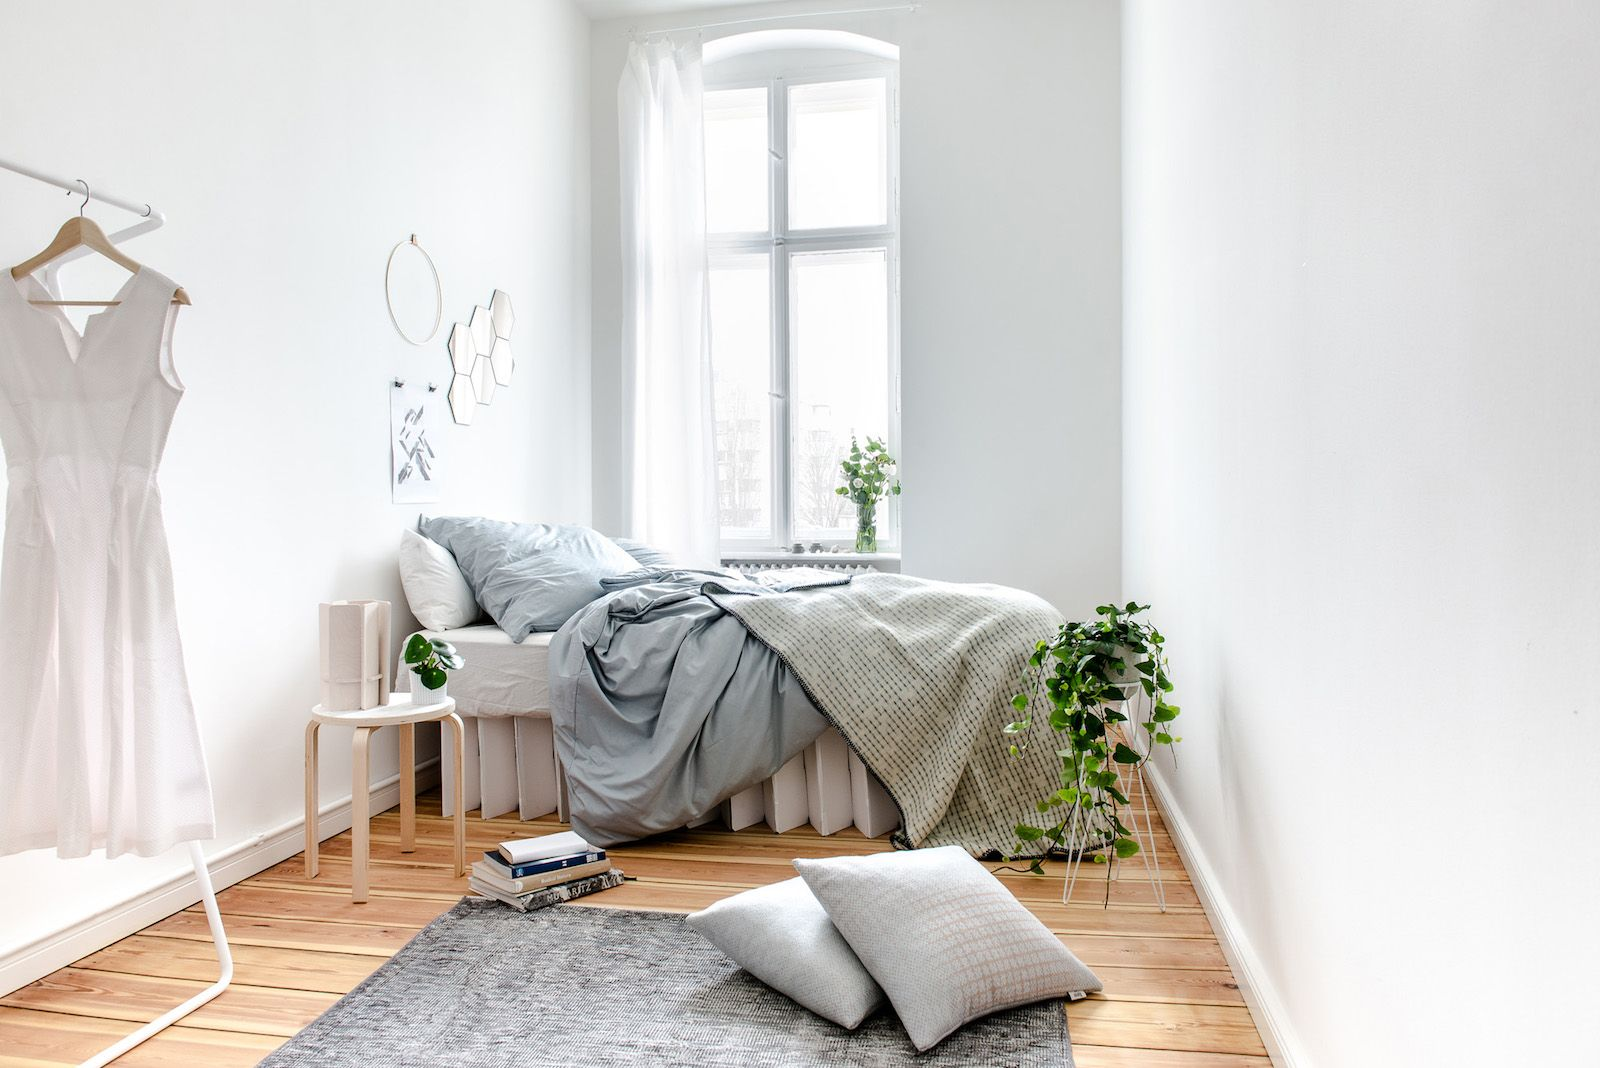 Could This Affordable Minimalist Cardboard Bed Be The Uk S Most Eco Friendly Bed Eco Warrior Princess Minimalist Bed Guest Room Decor Minimalist Bedroom